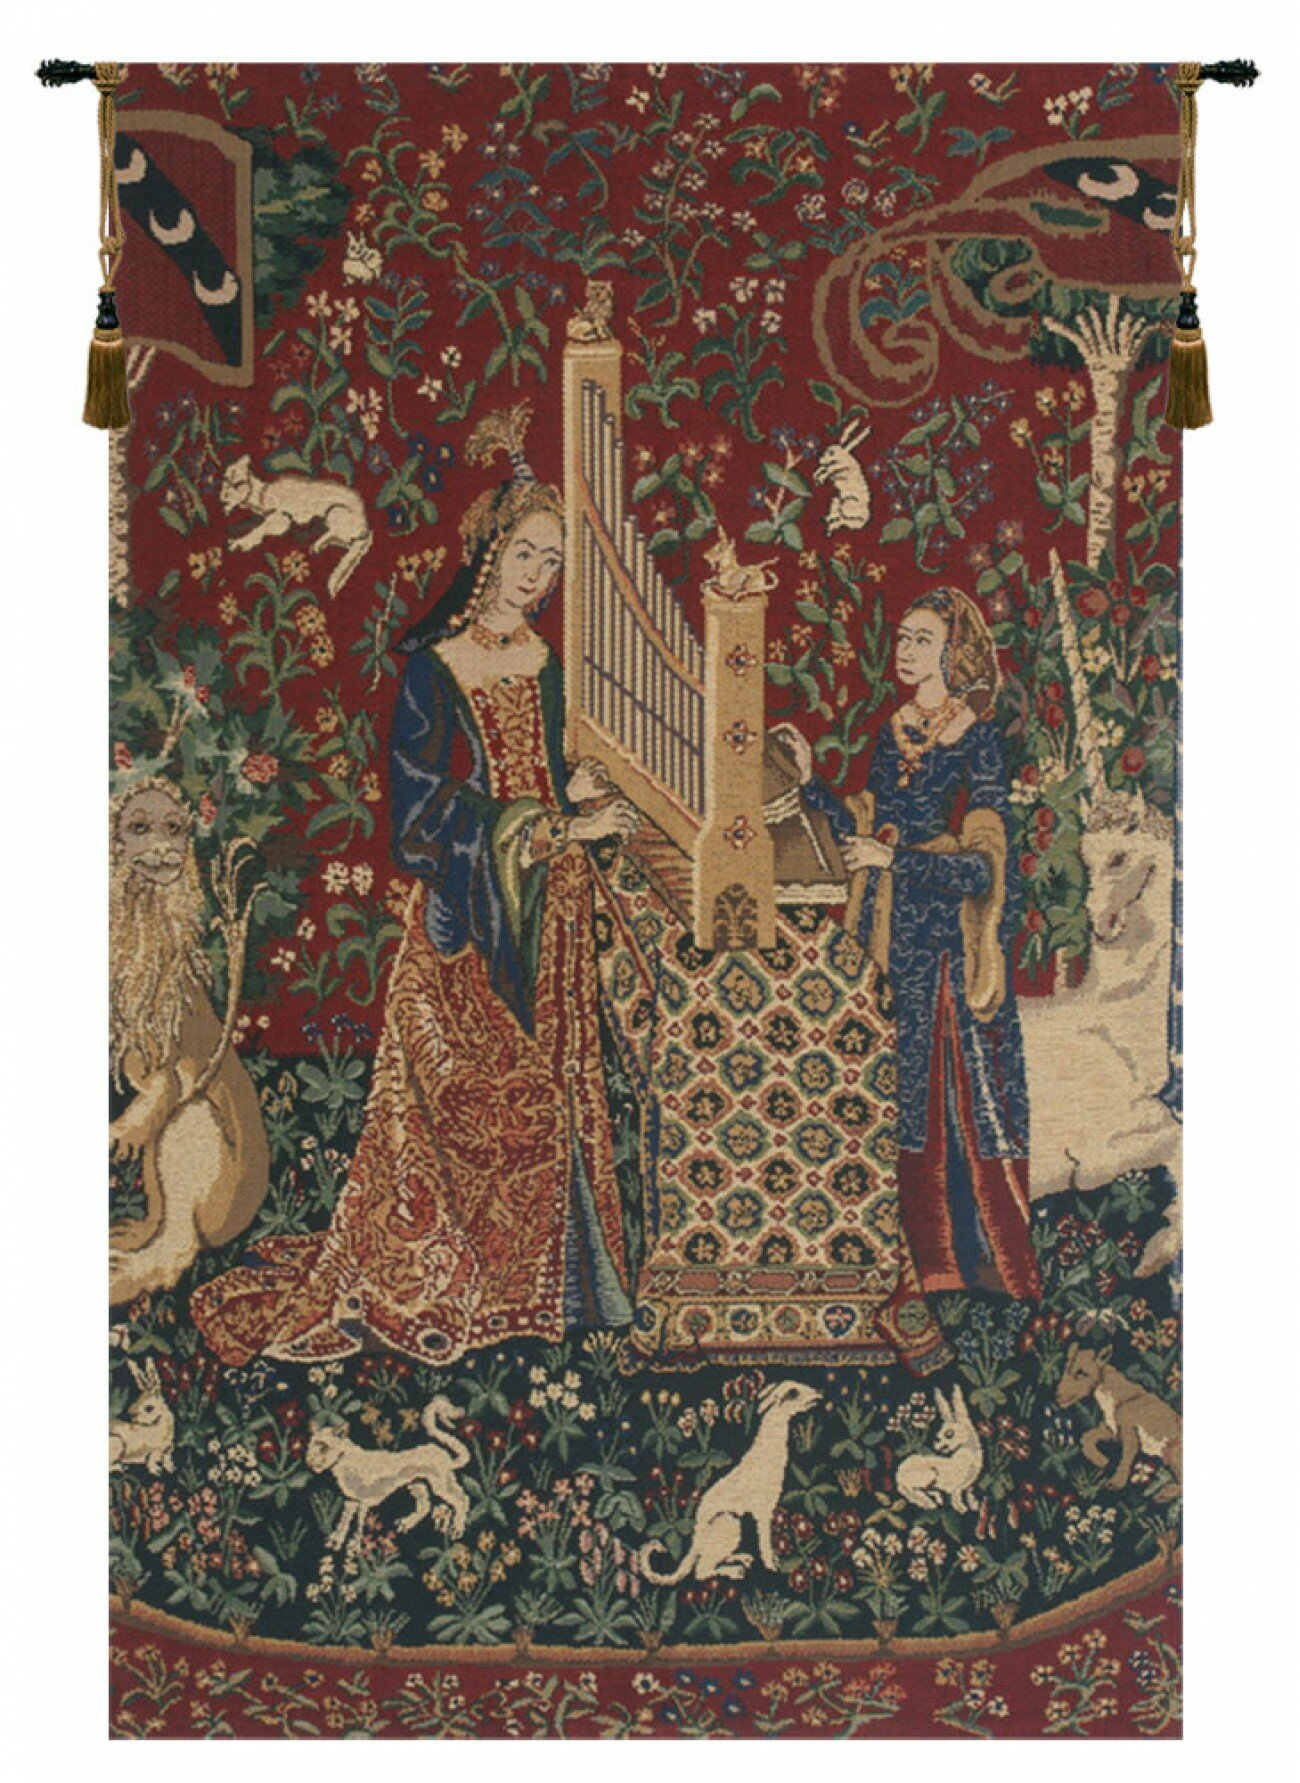 Lady And The Organ Iii Wall Hanging In Latest Blended Fabric Mucha Autumn European Wall Hangings (View 4 of 20)